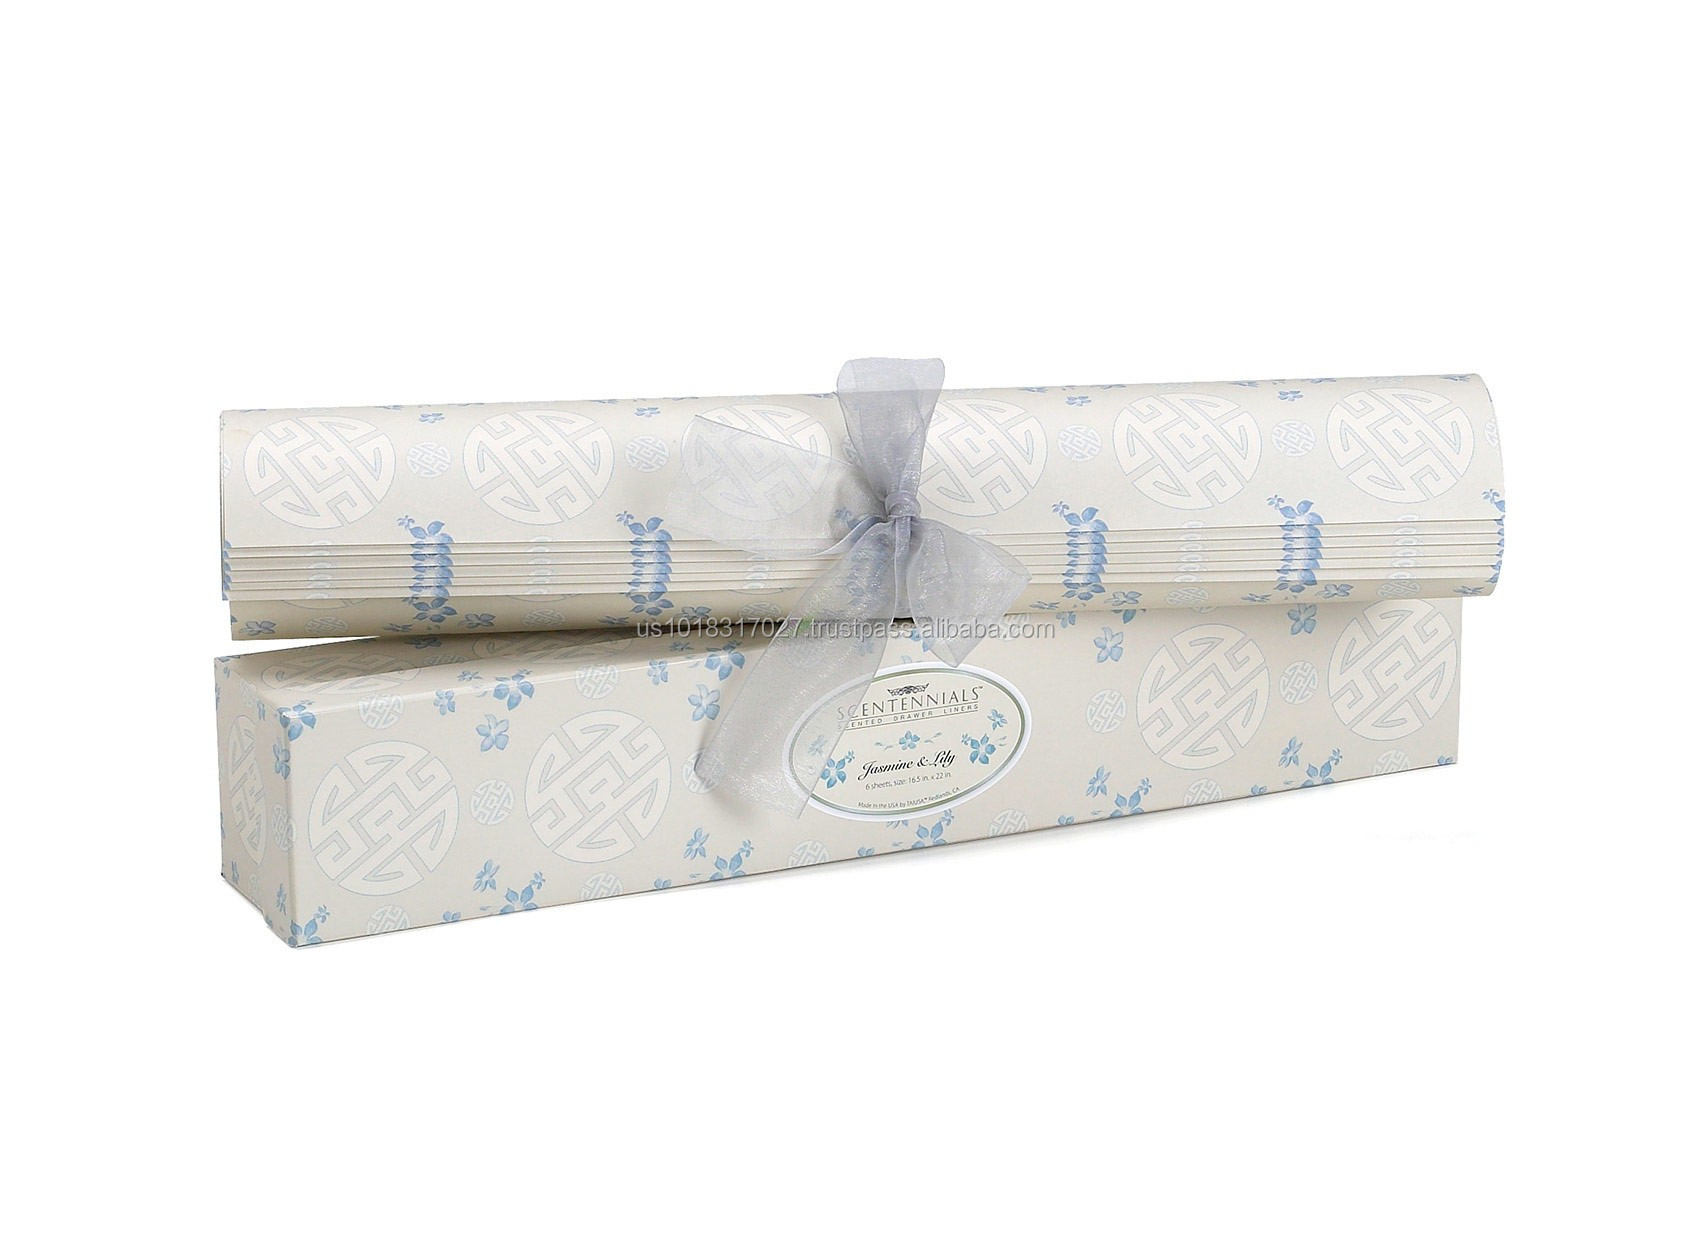 Jasmine and Lily Scented Drawer Liner From Scentennials